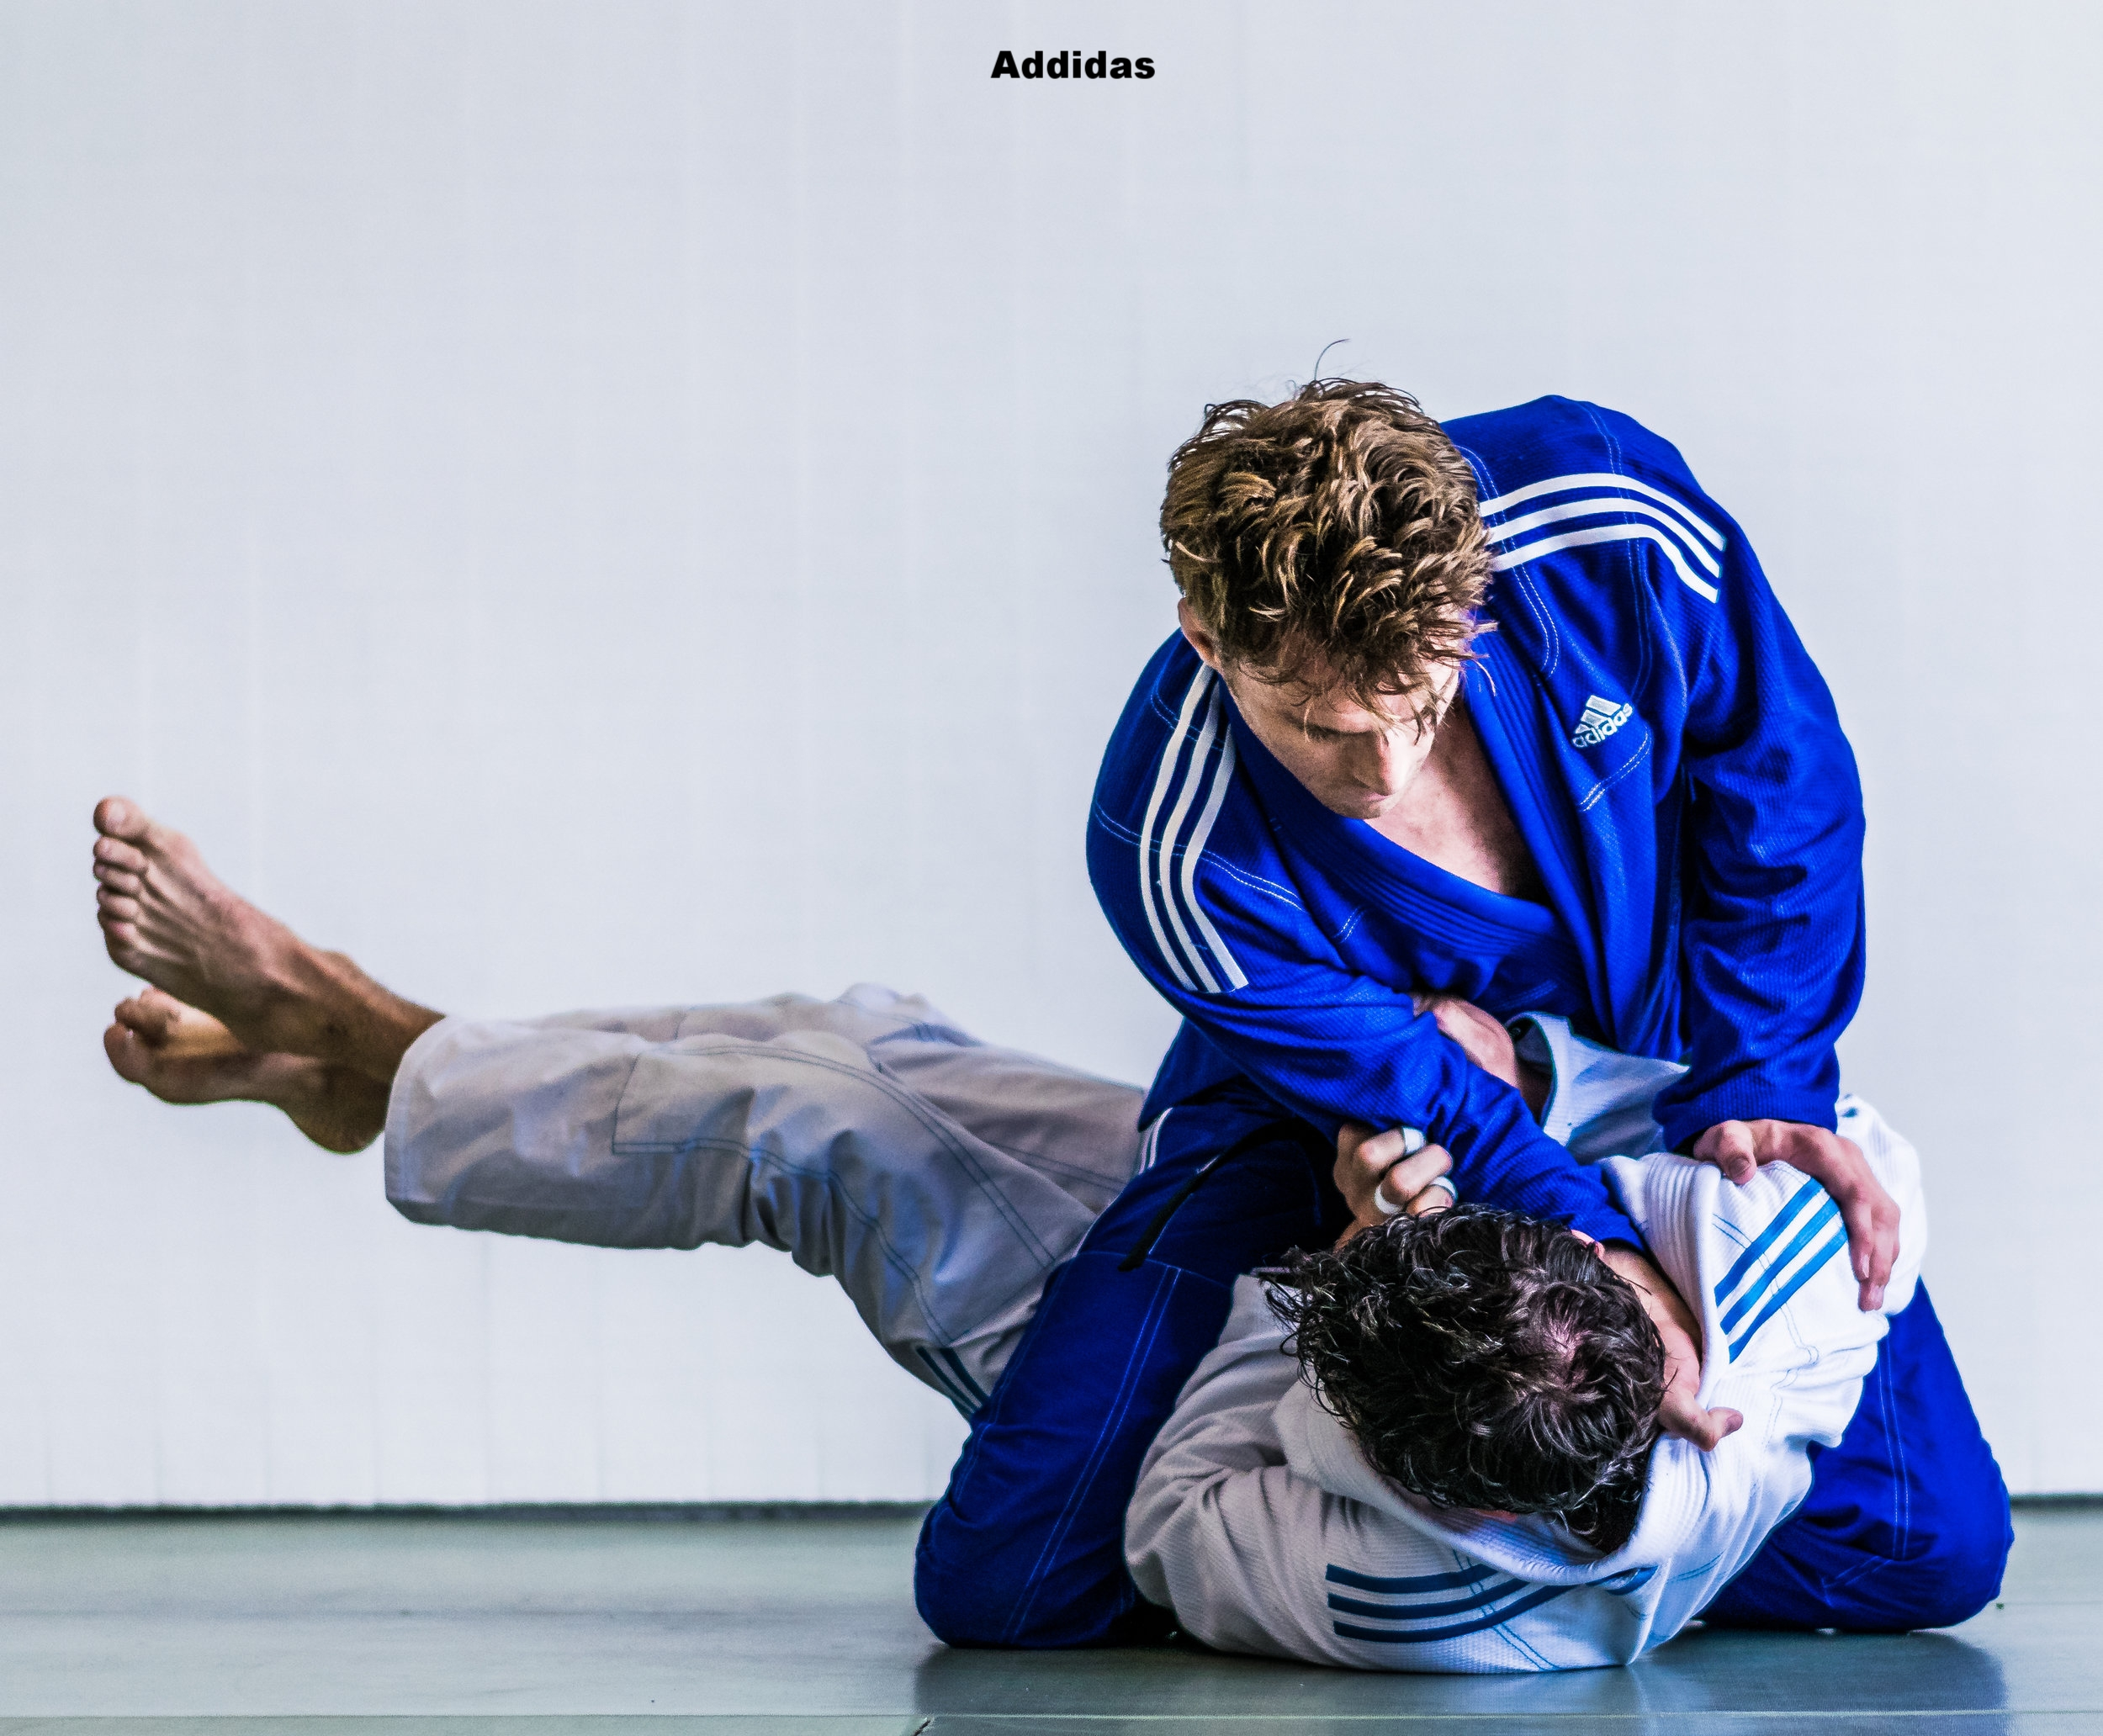 Addidas with Clark Gracie